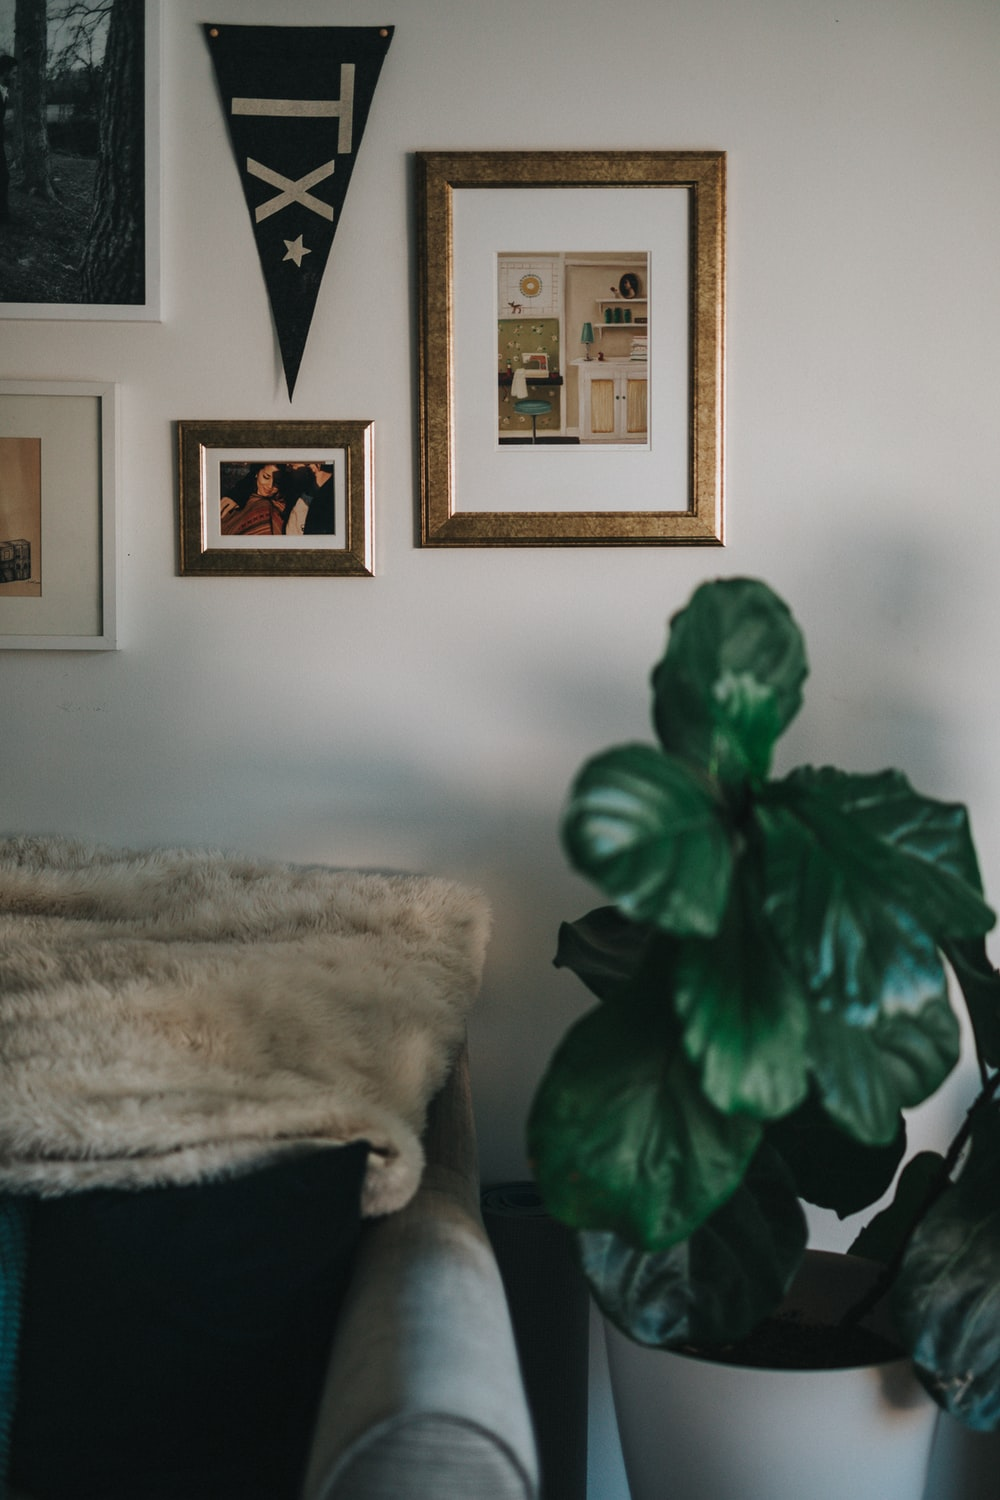 green leafed plant in vase near sofa